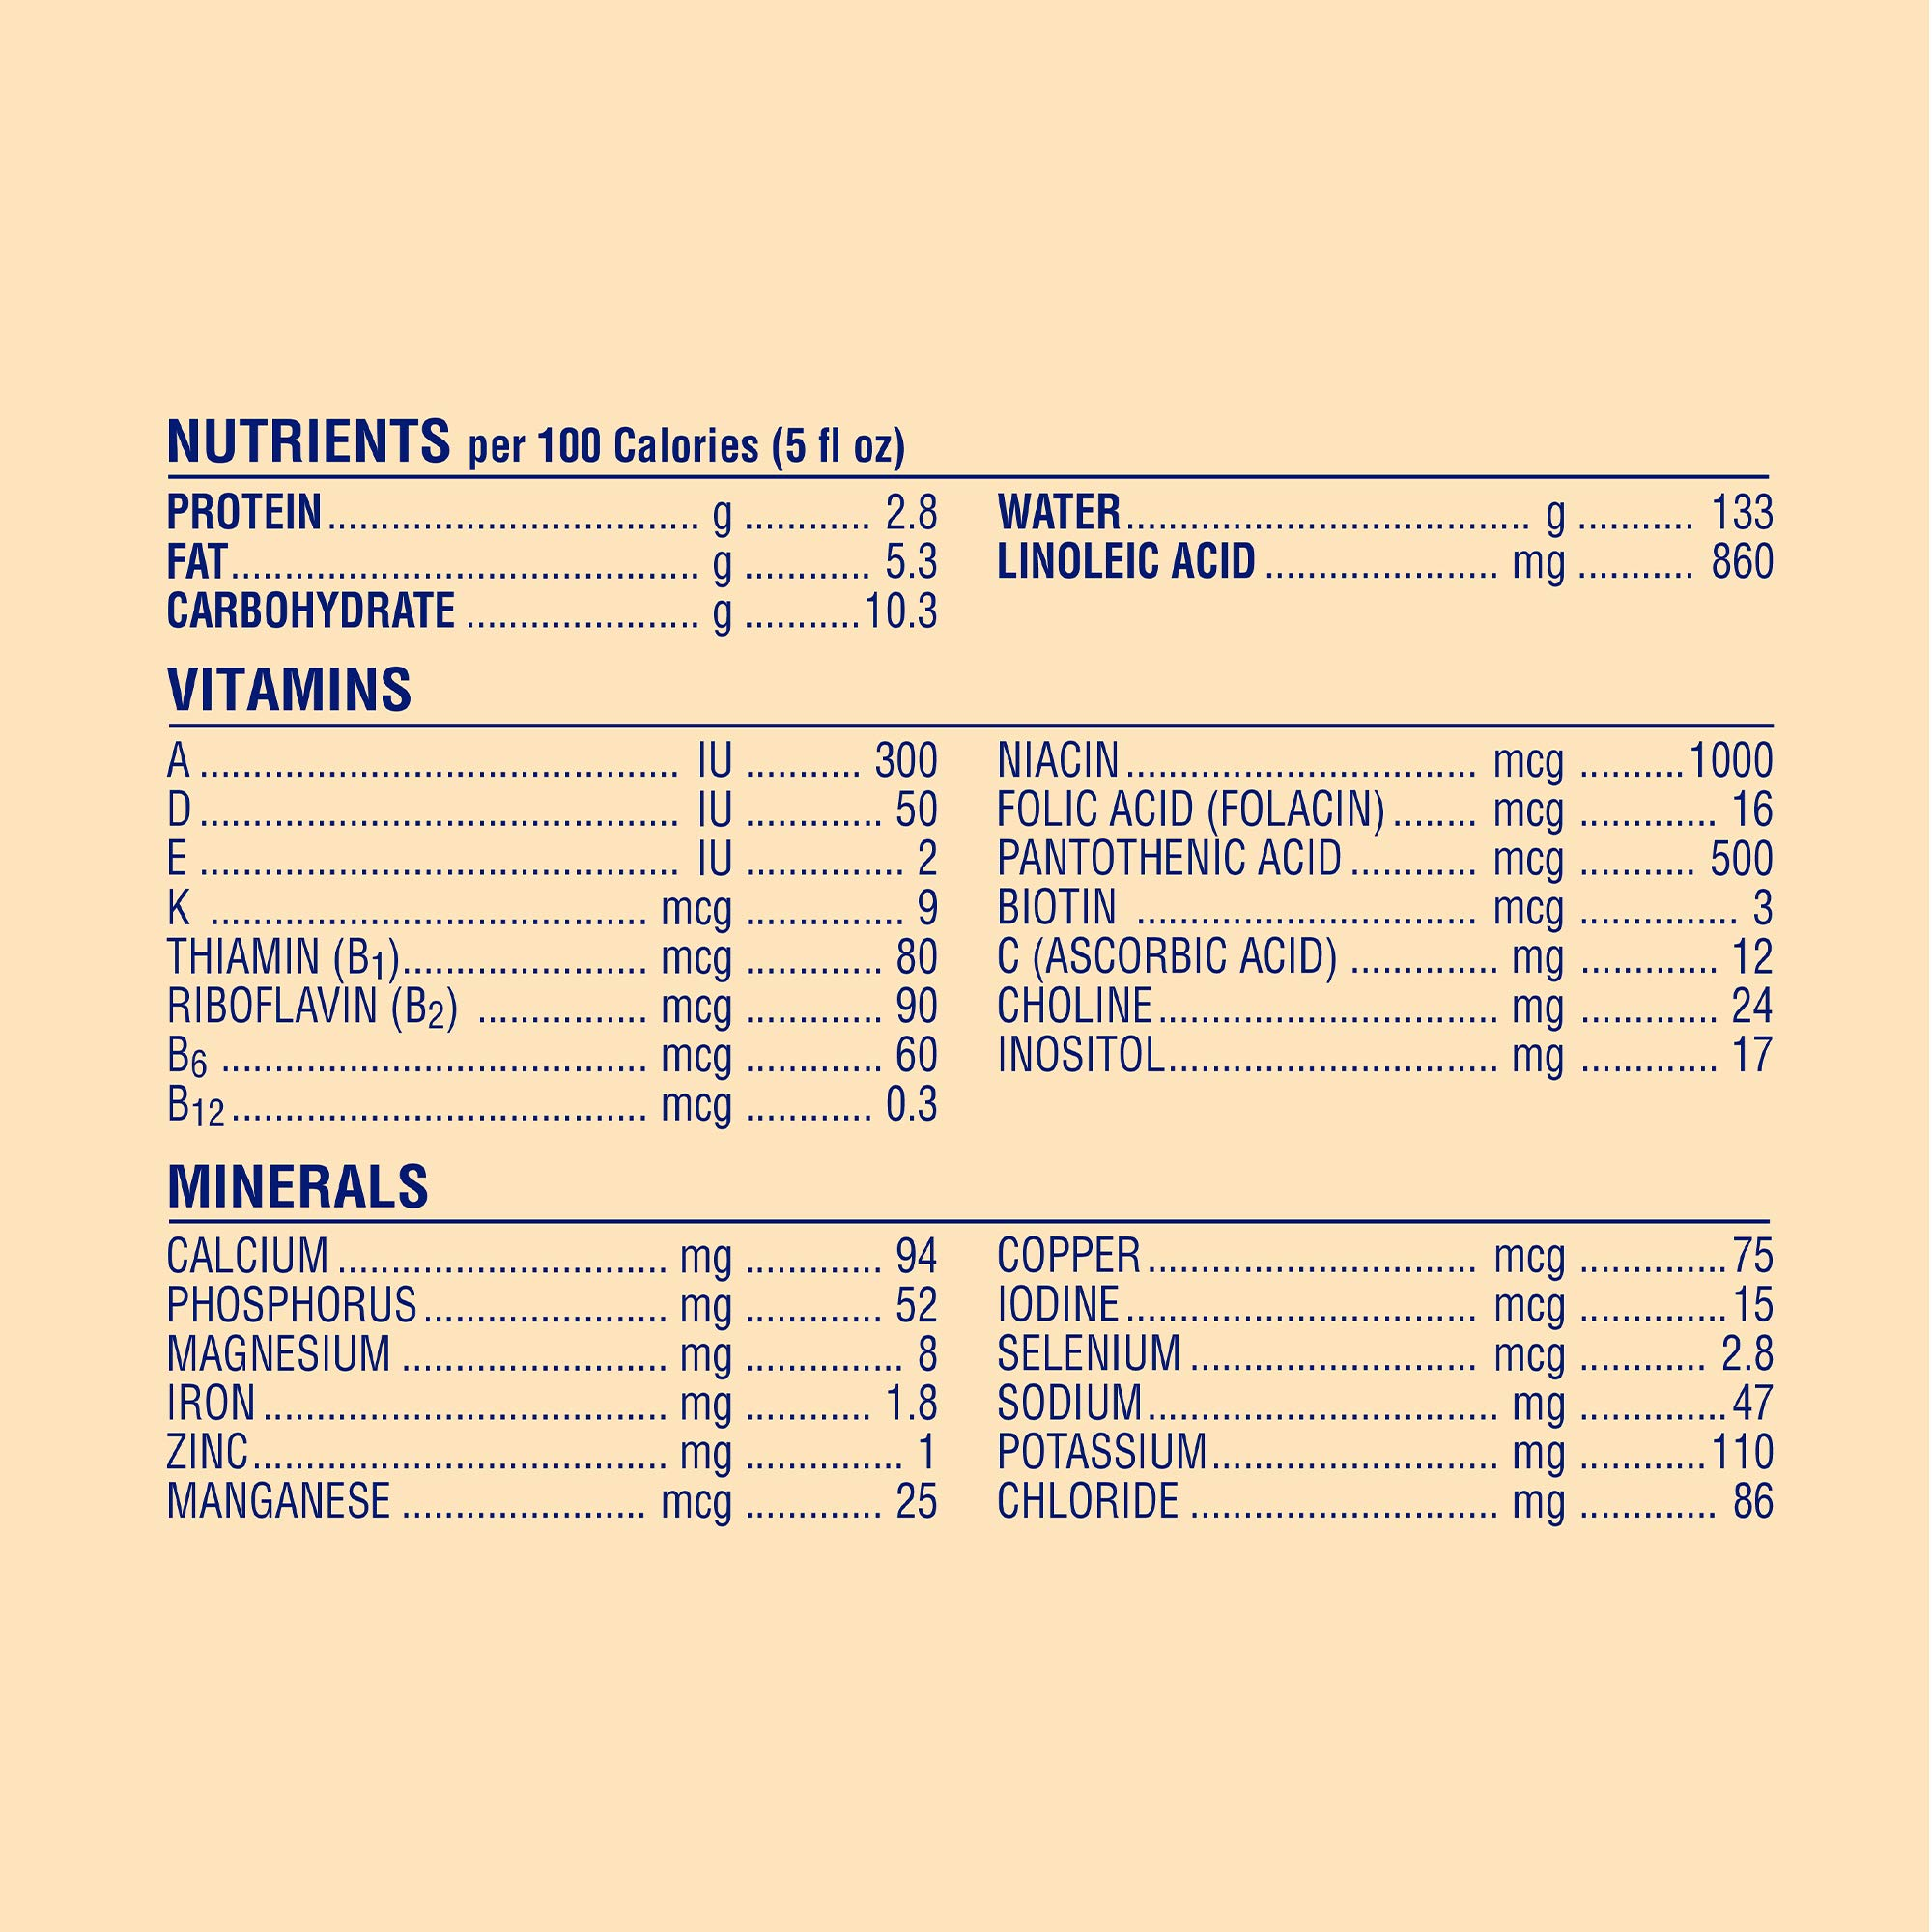 Enfamil Nutramigen Infant Formula - Hypoallergenic & Lactose-Free for Fast Colic Management - Ready to Use Liquid, 32 fl oz (6 count) by Enfamil (Image #12)